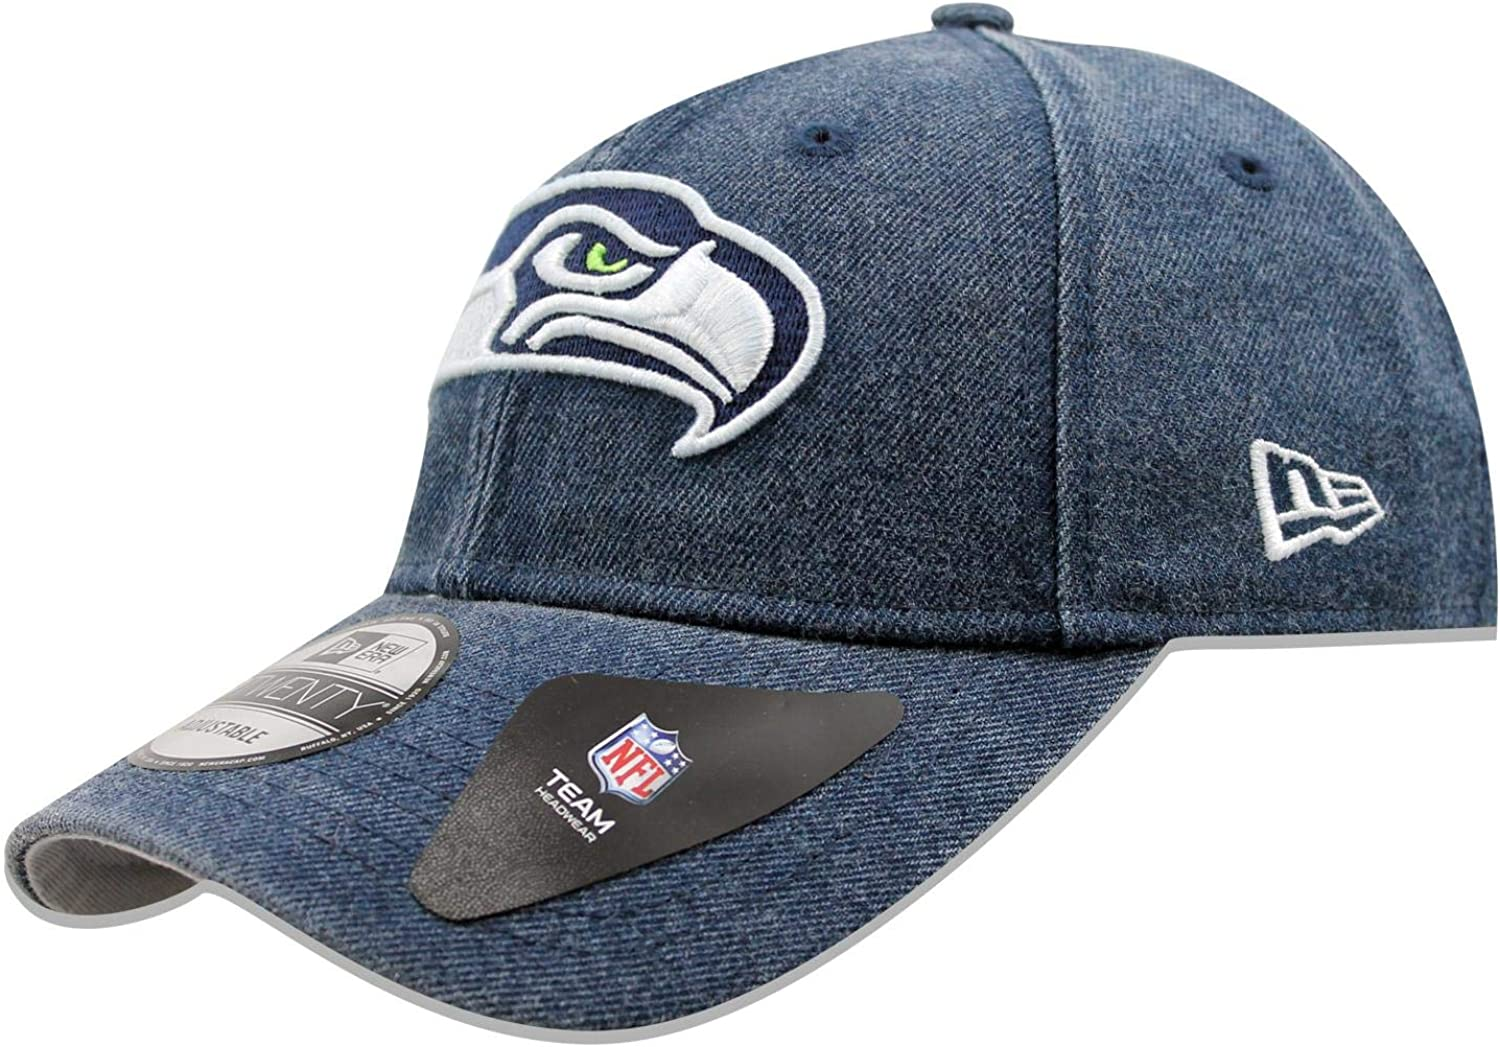 NFL Seattle Seahawks New Era The League 9FORTY Adjustable Cap Hat Headwear